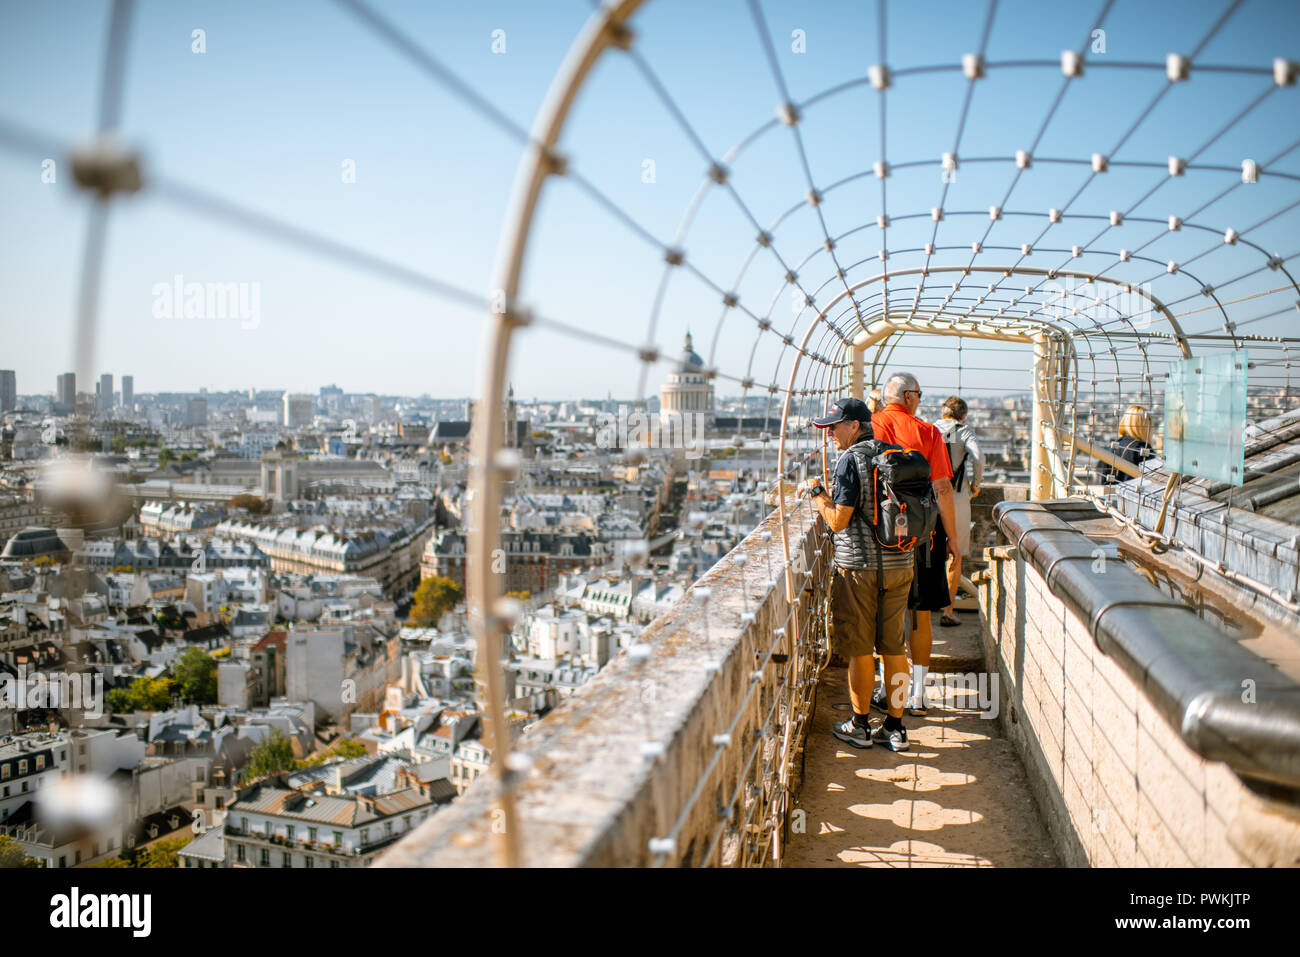 Paris France September 01 2018 Viewpoint Terrace On The Top Of Notre Dame Cathedral With Tourists In Paris Stock Photo Alamy